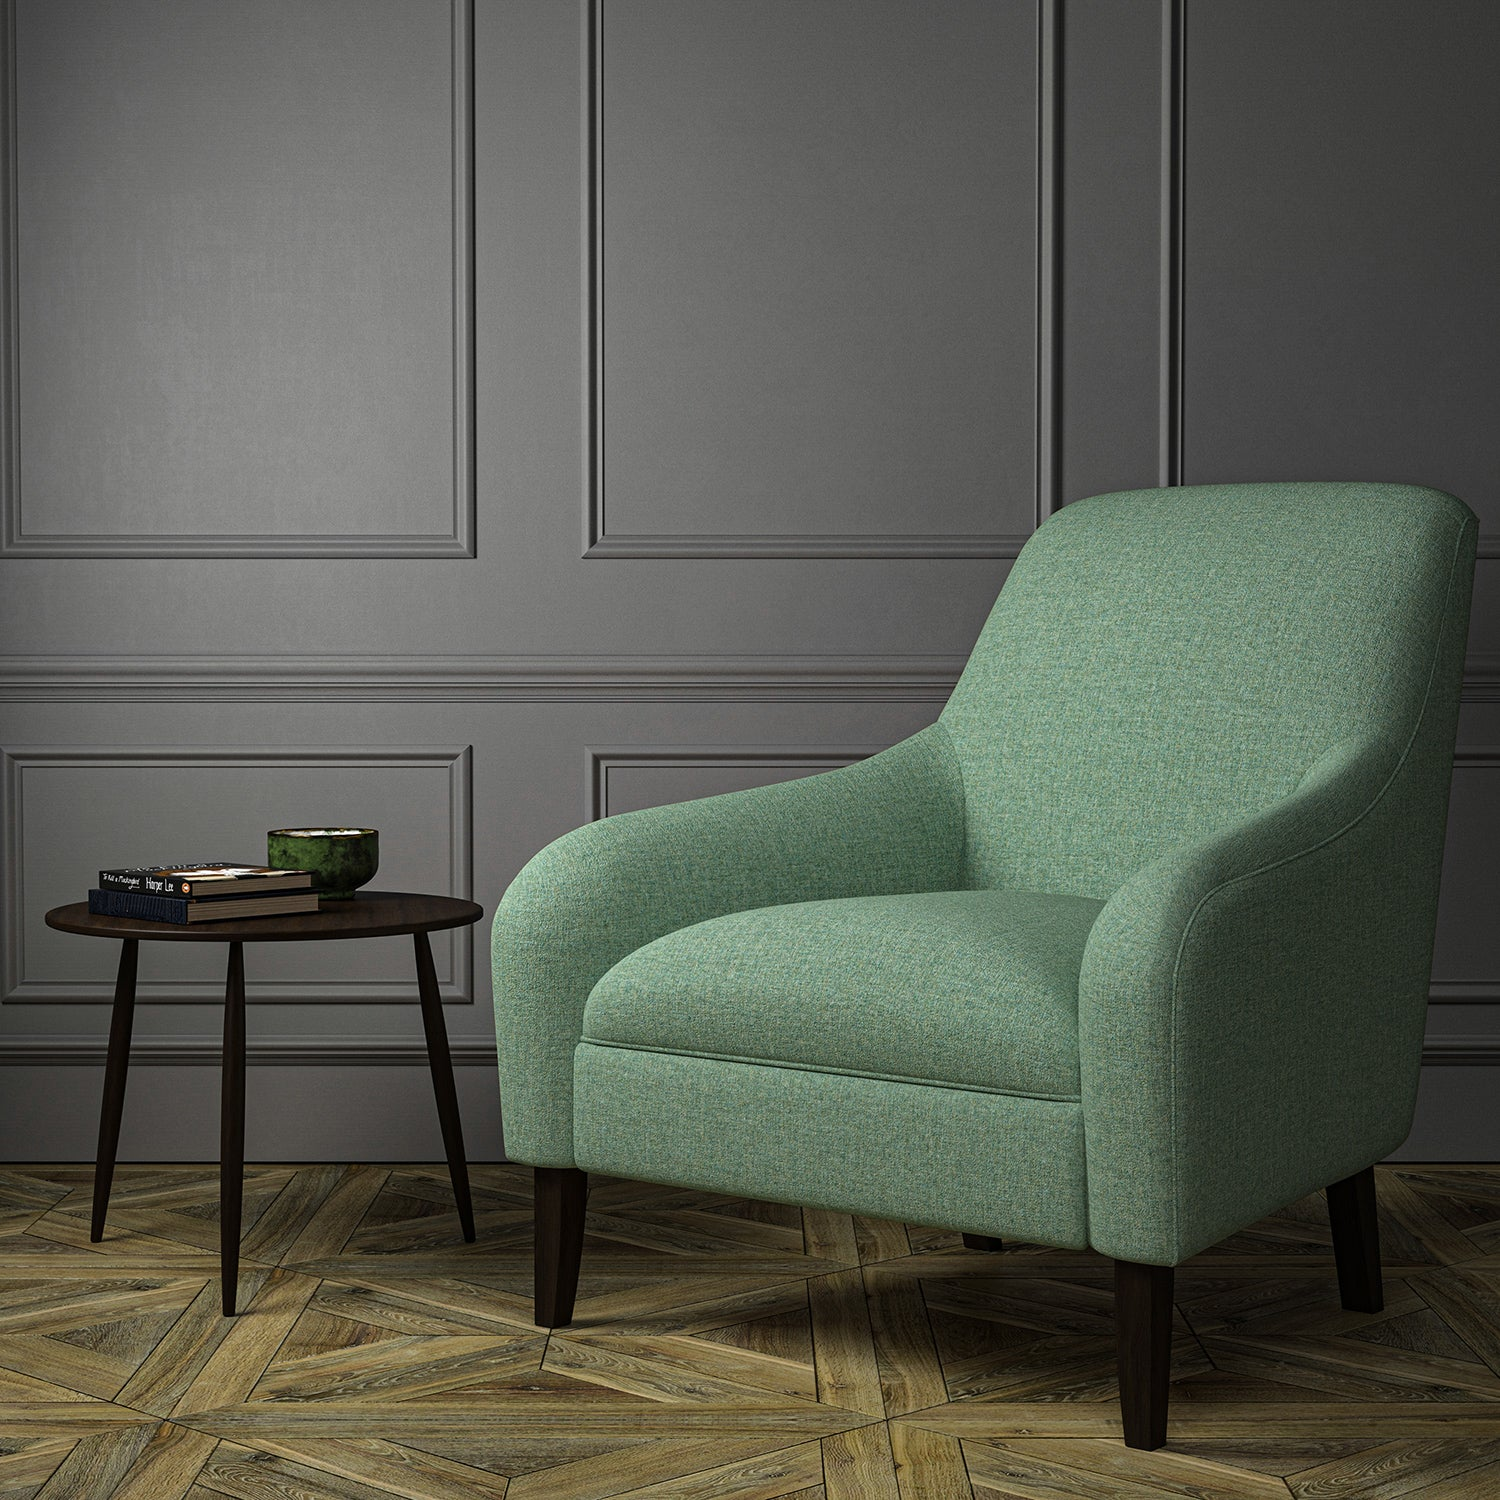 Chair upholstered in a turquoise Scottish wool herringbone fabric